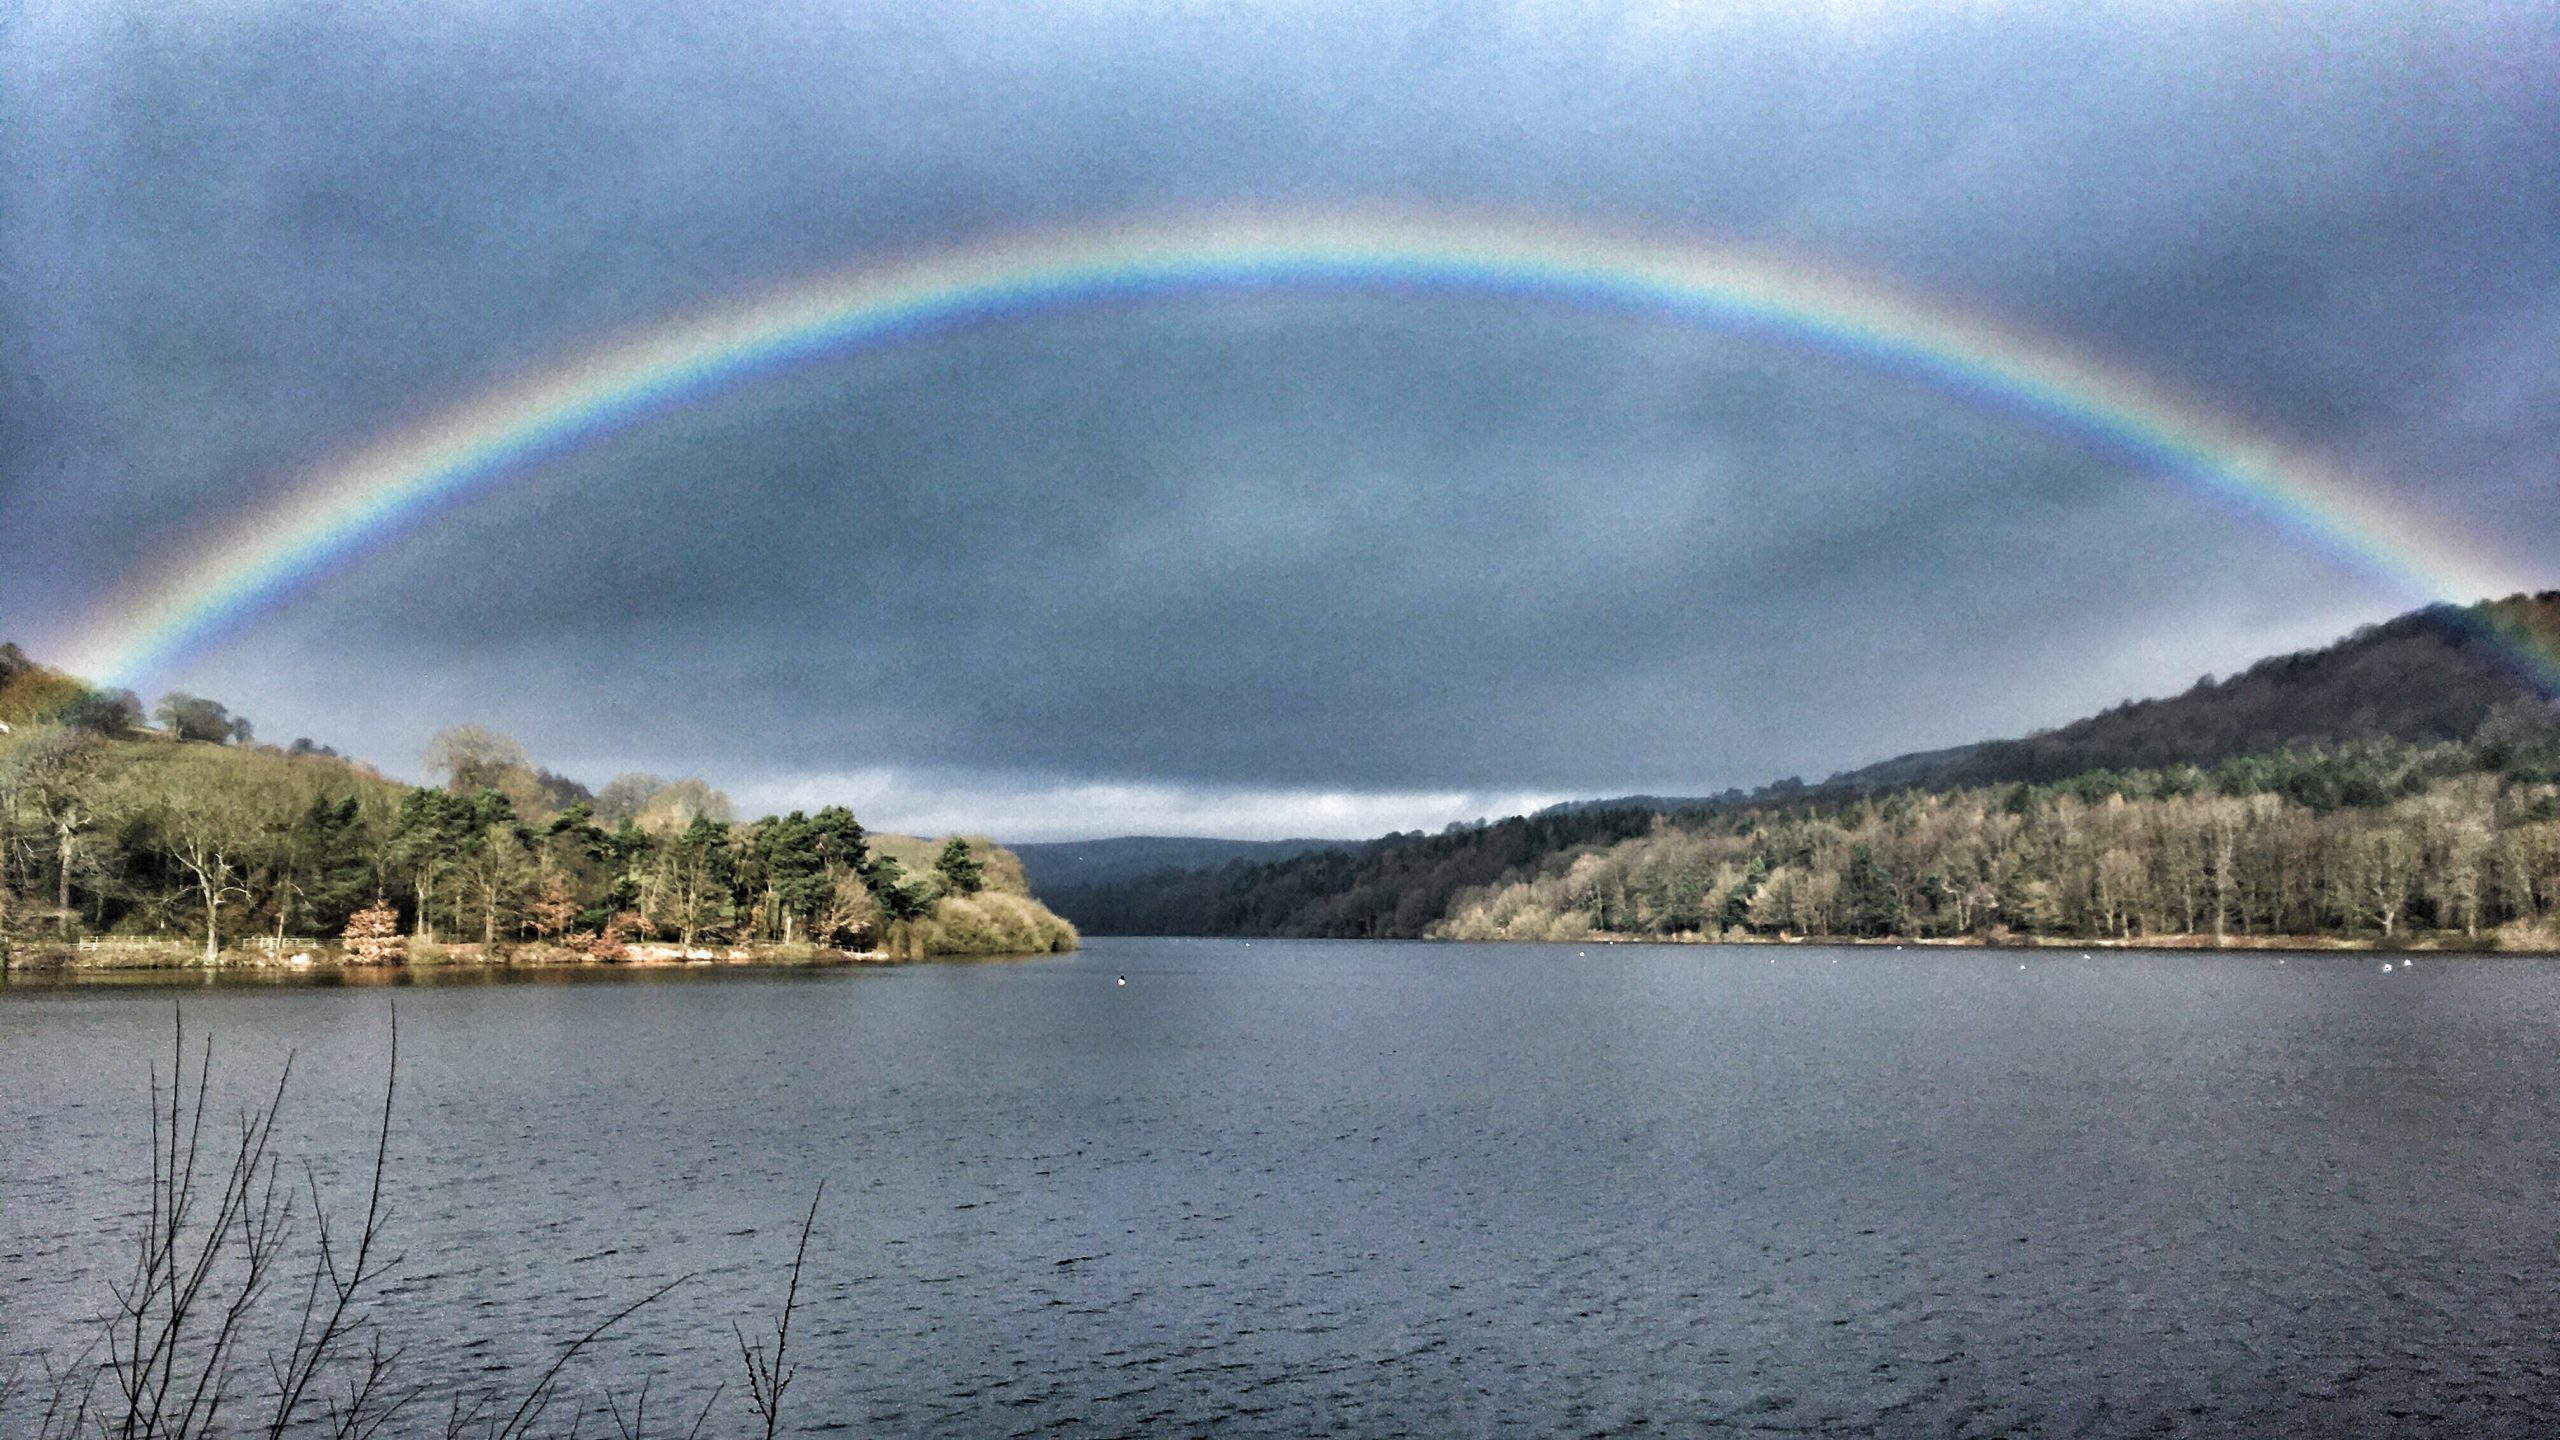 Rainbow over Damflask